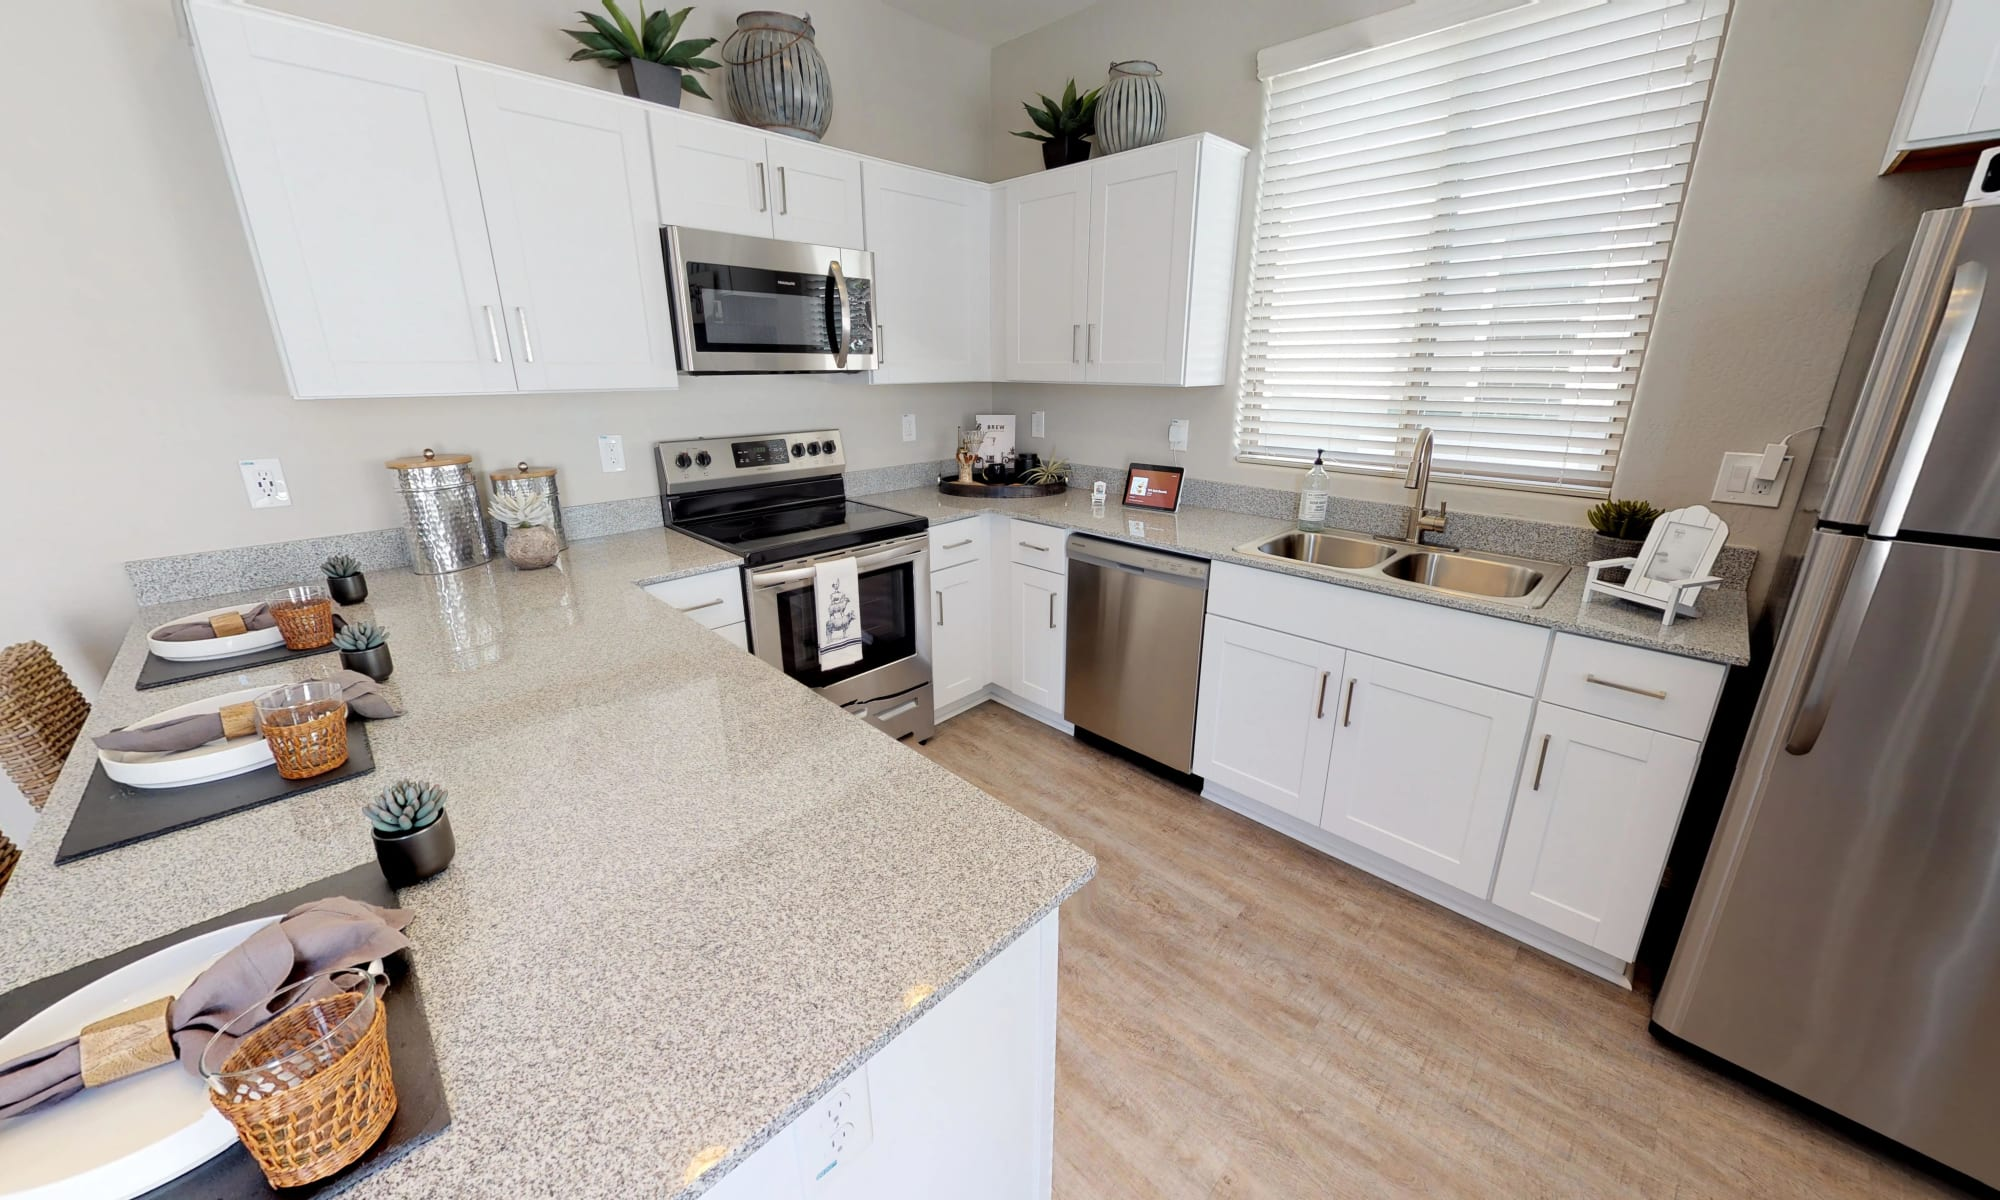 Kitchen at Christopher Todd Communities On Mountain View in Surprise, Arizona